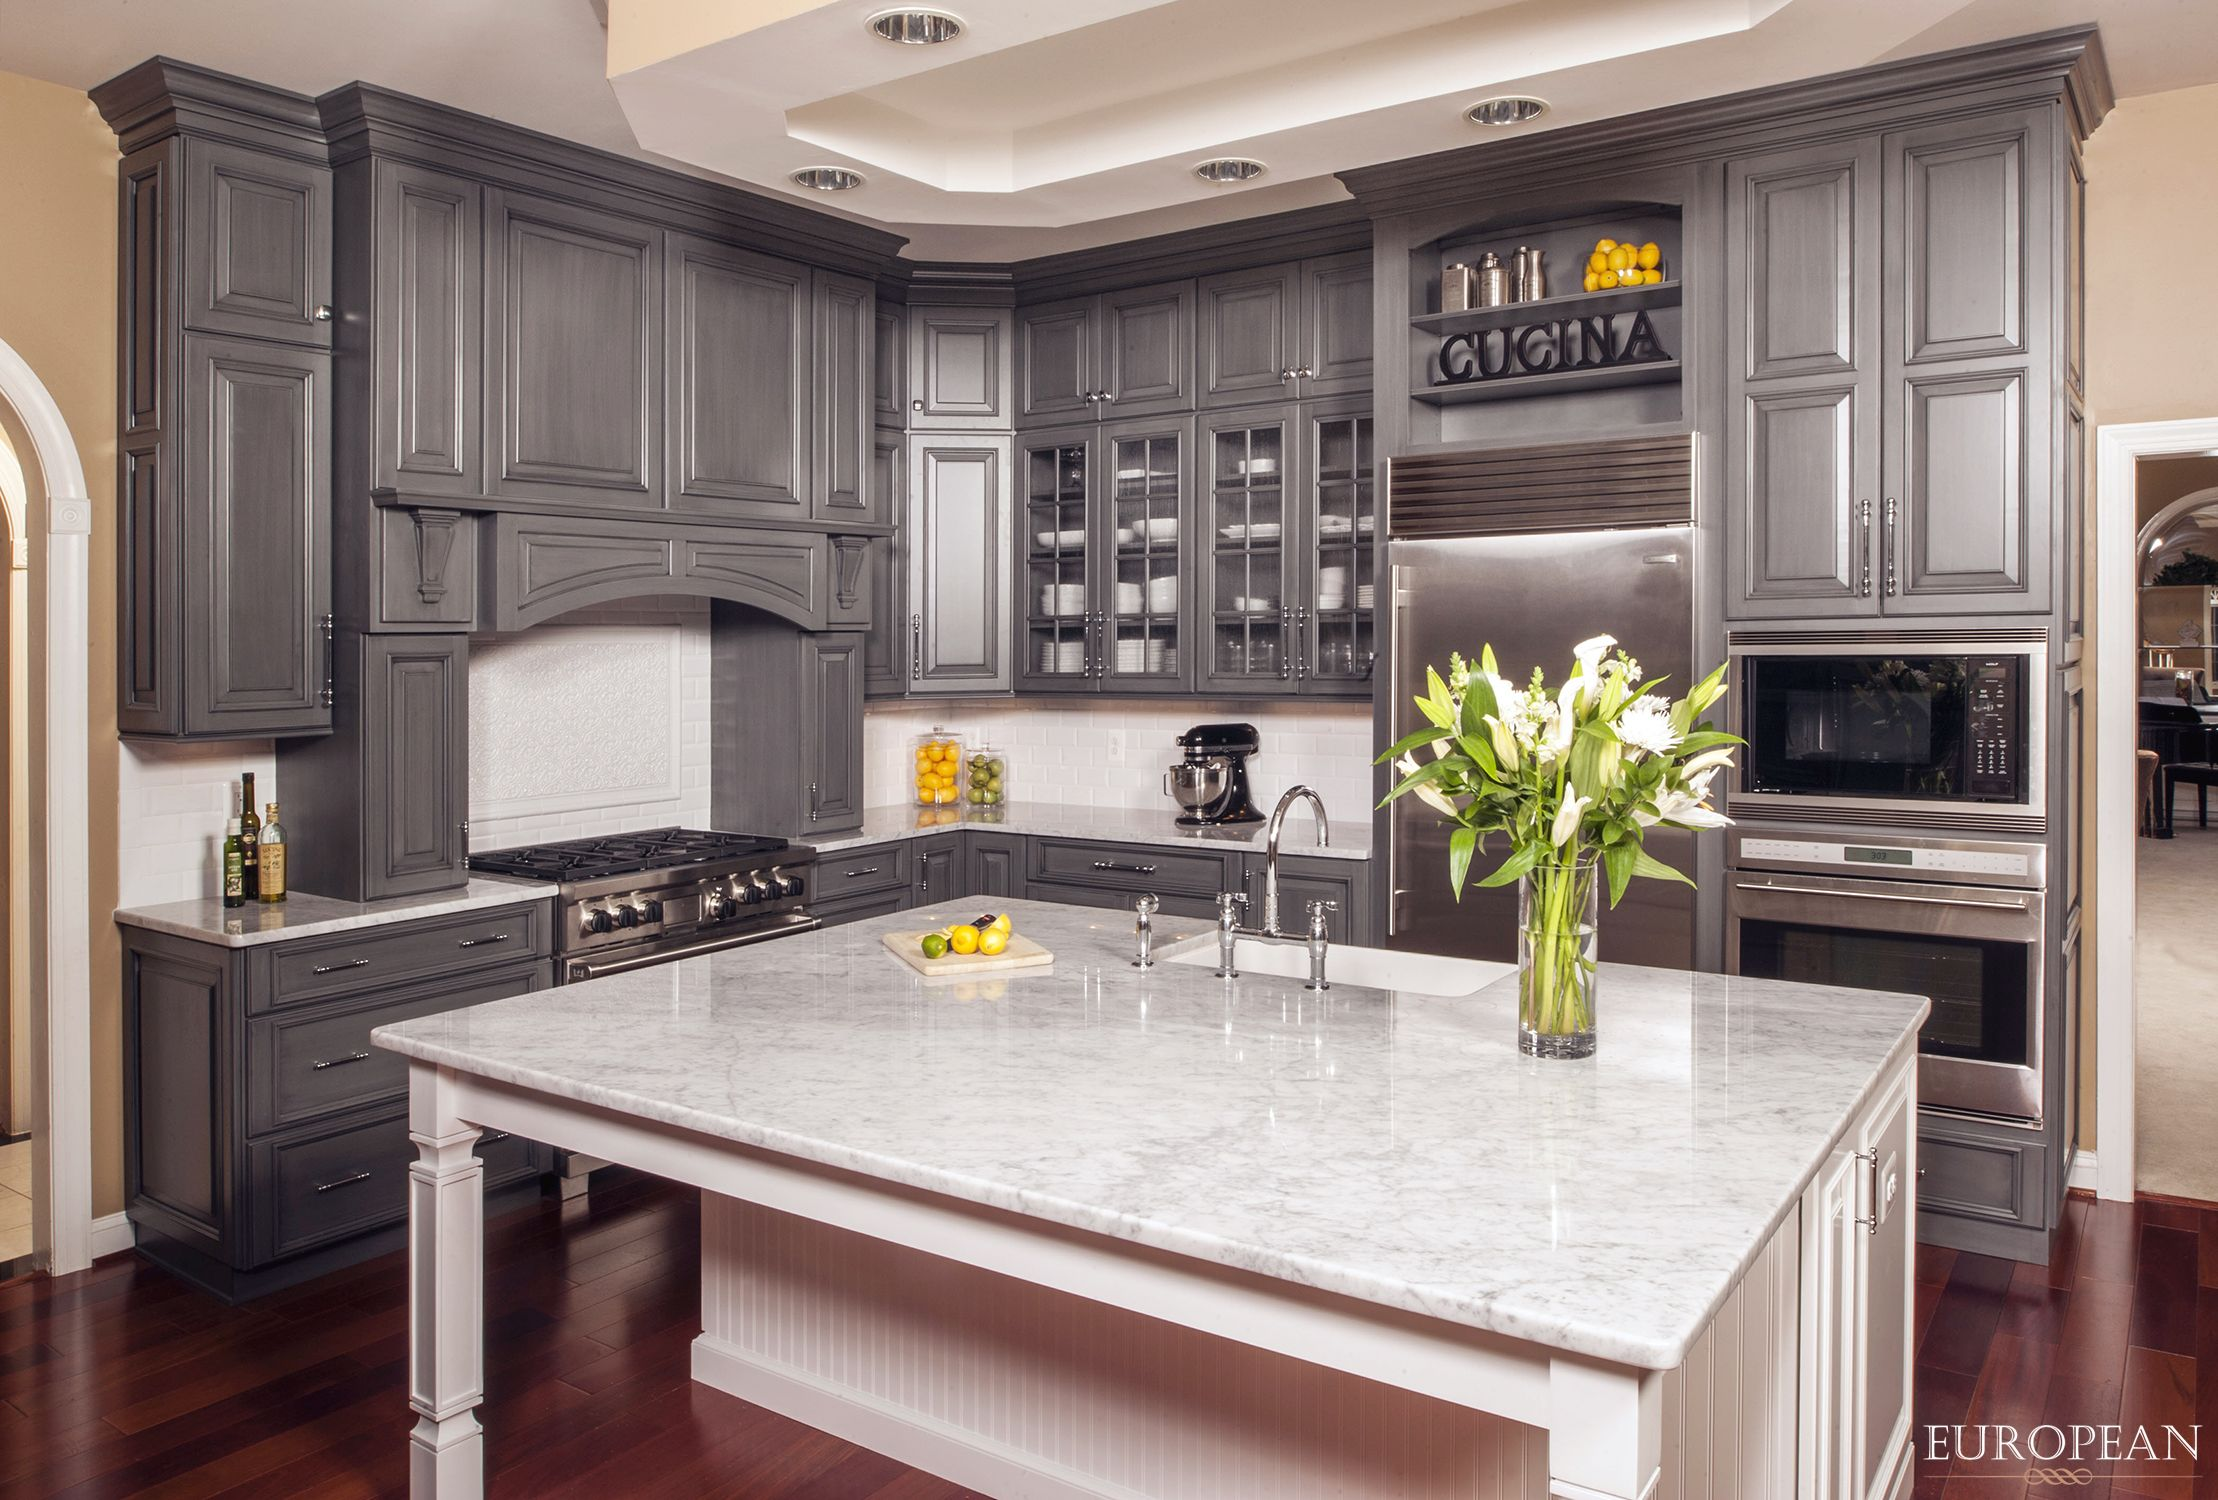 What You Need To Know About Stone Care Maintenance Kitchen Design Kitchen And Bath Design Kitchen Marble